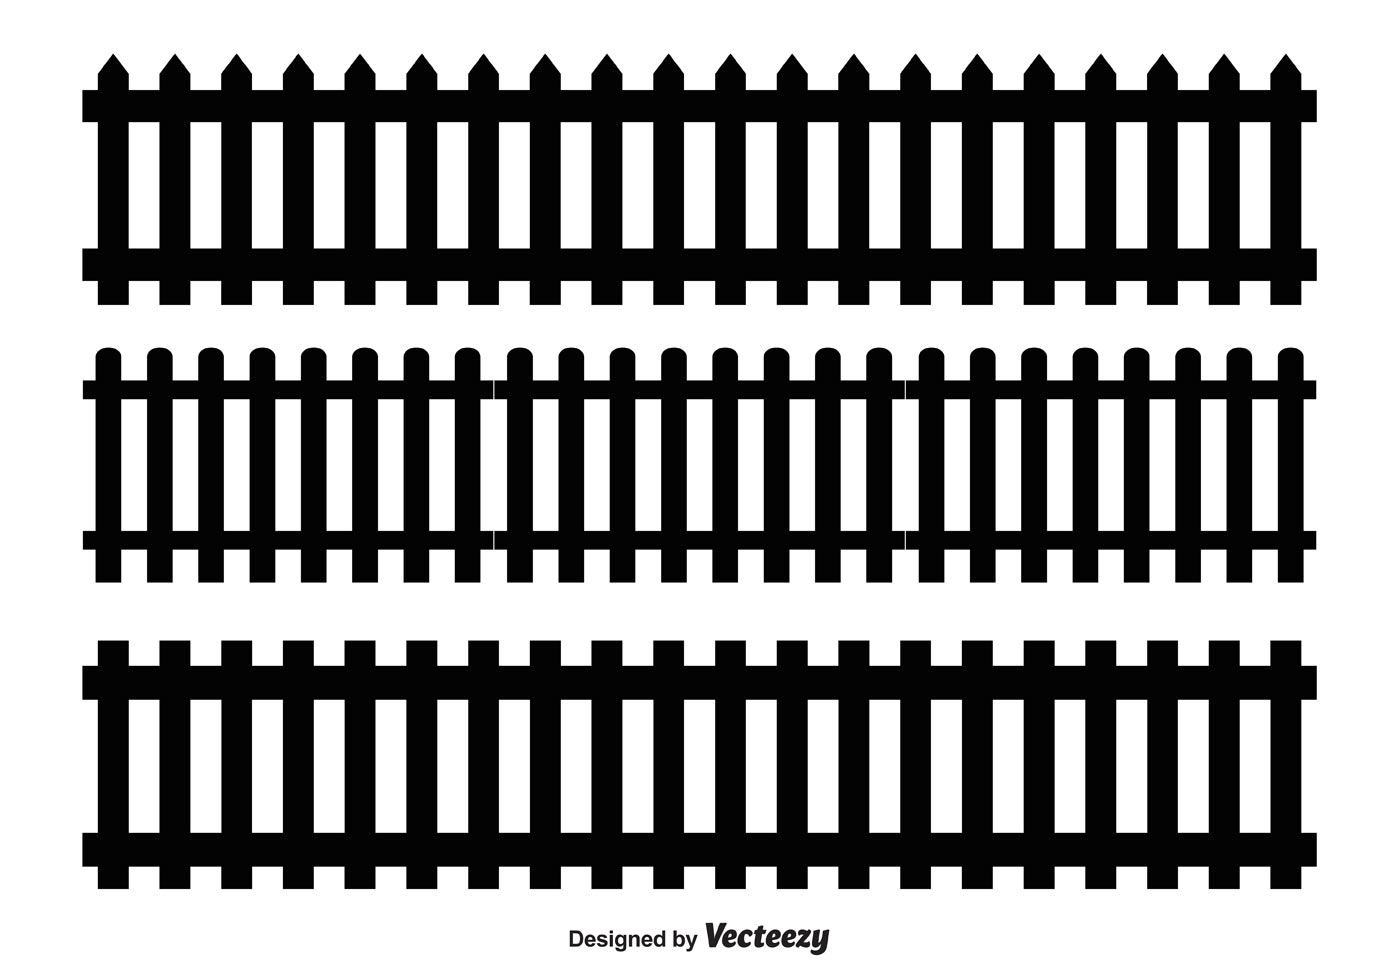 Picket Fence Vector Shapes - Download Free Vectors ...